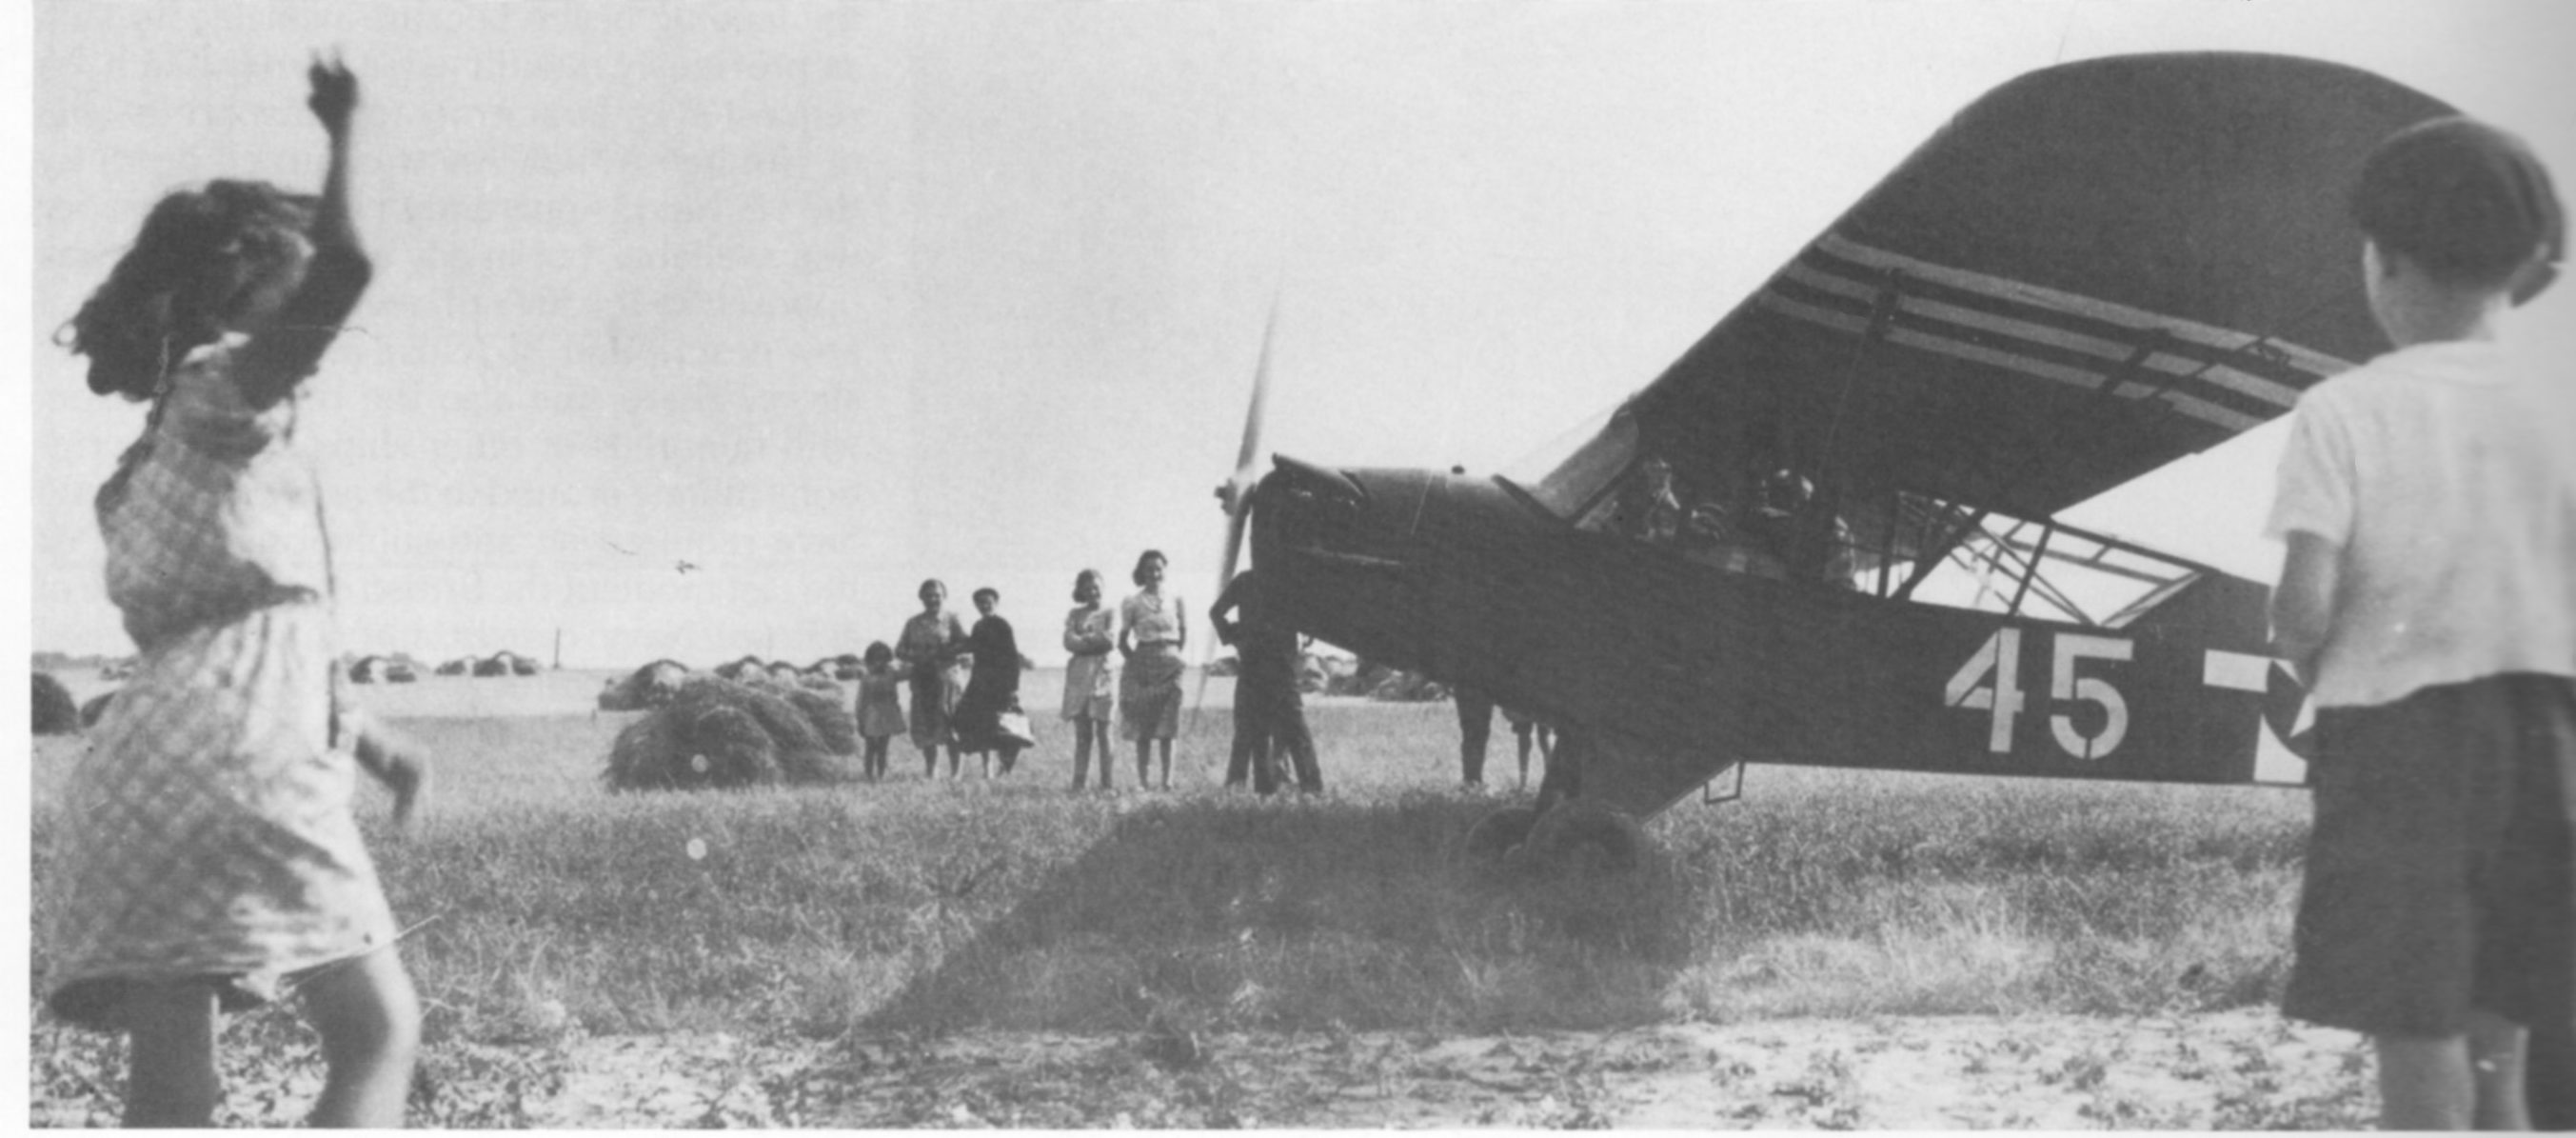 Piper L - 4 in Normandy, summer 1944